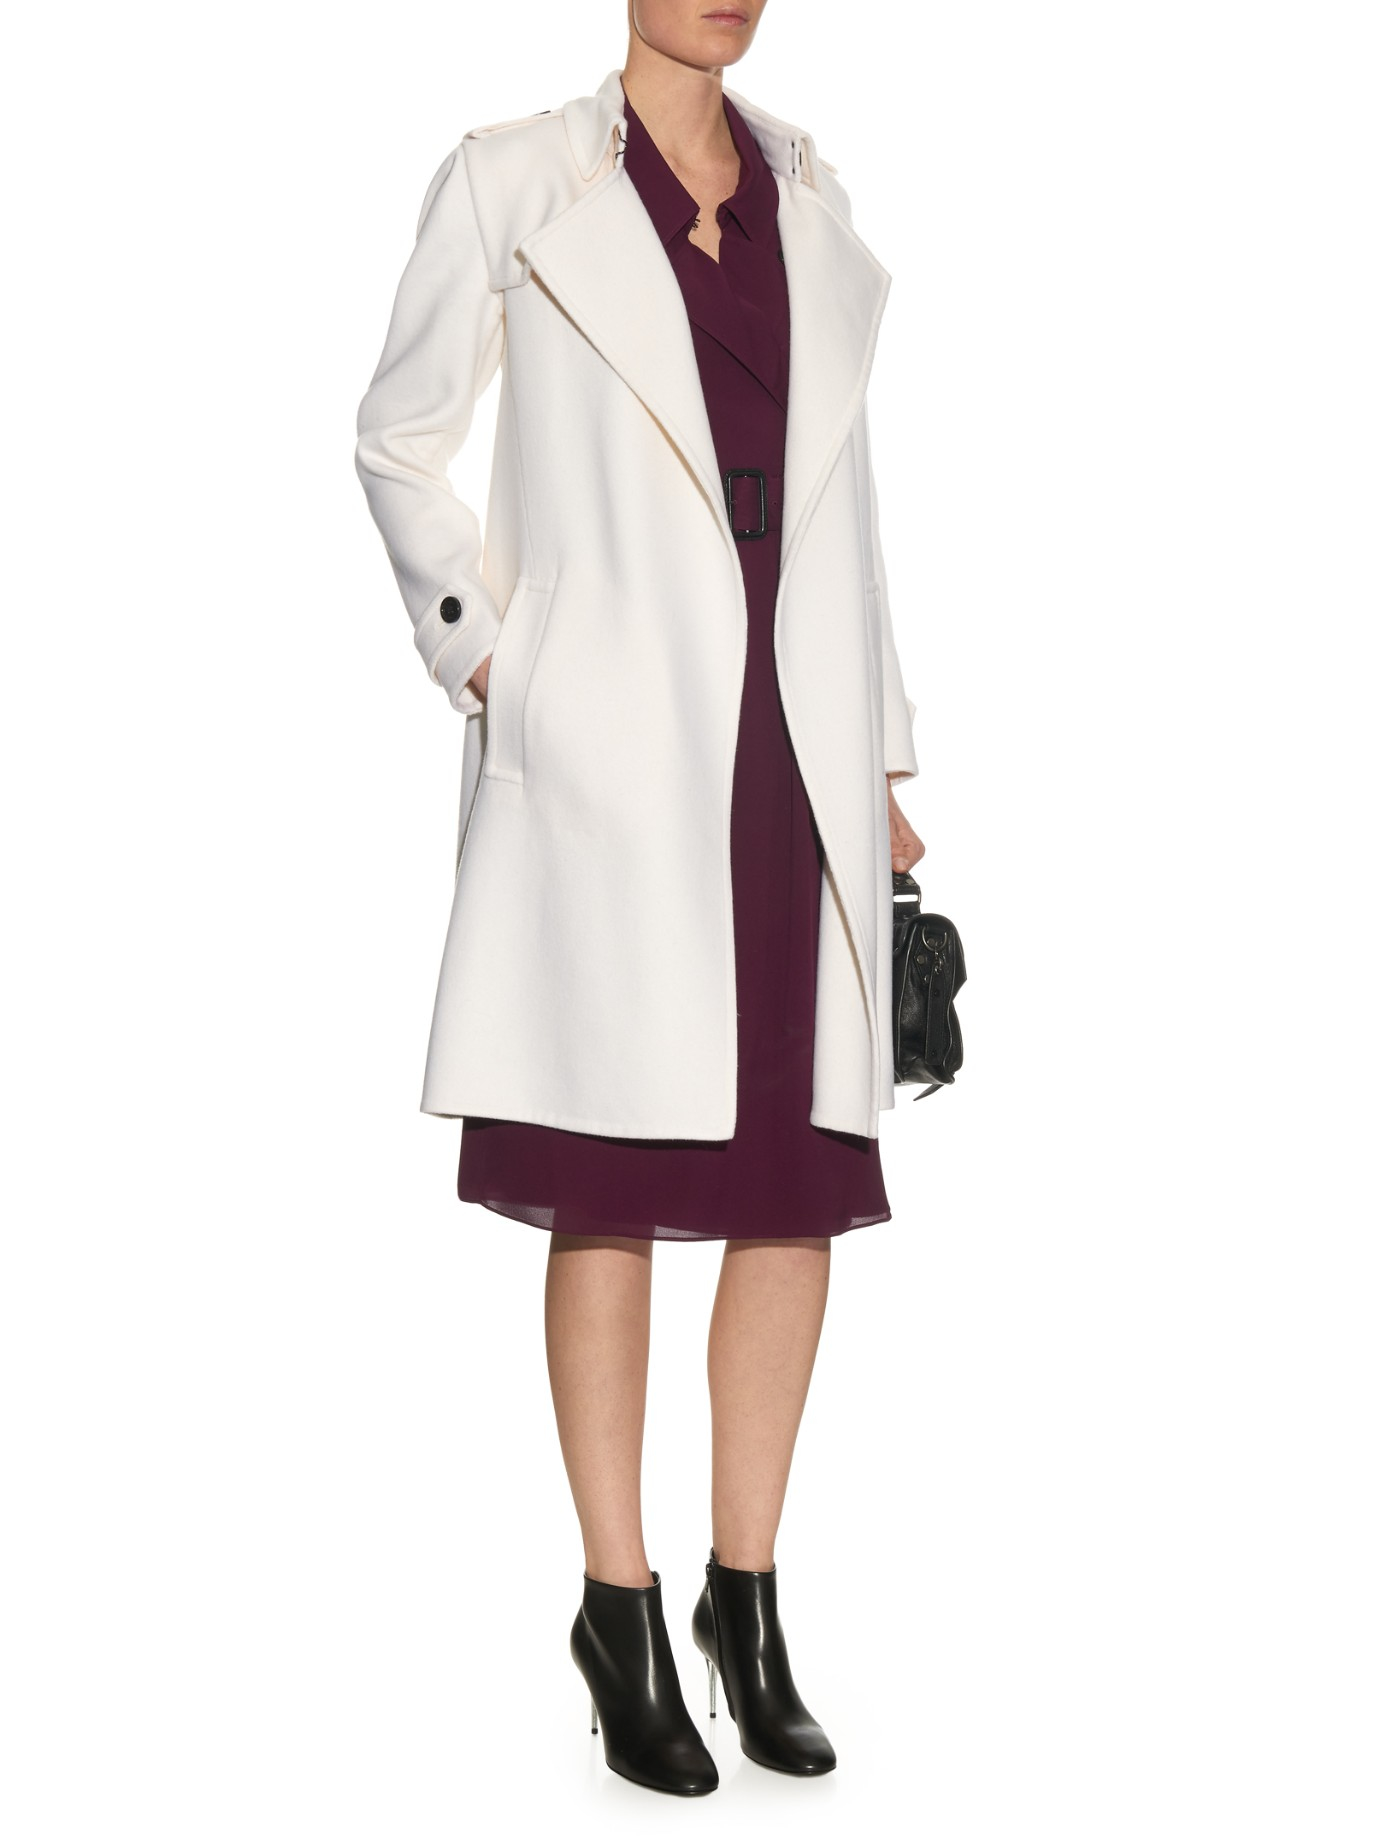 Burberry Tempsford Double-faced Cashmere Coat in White | Lyst